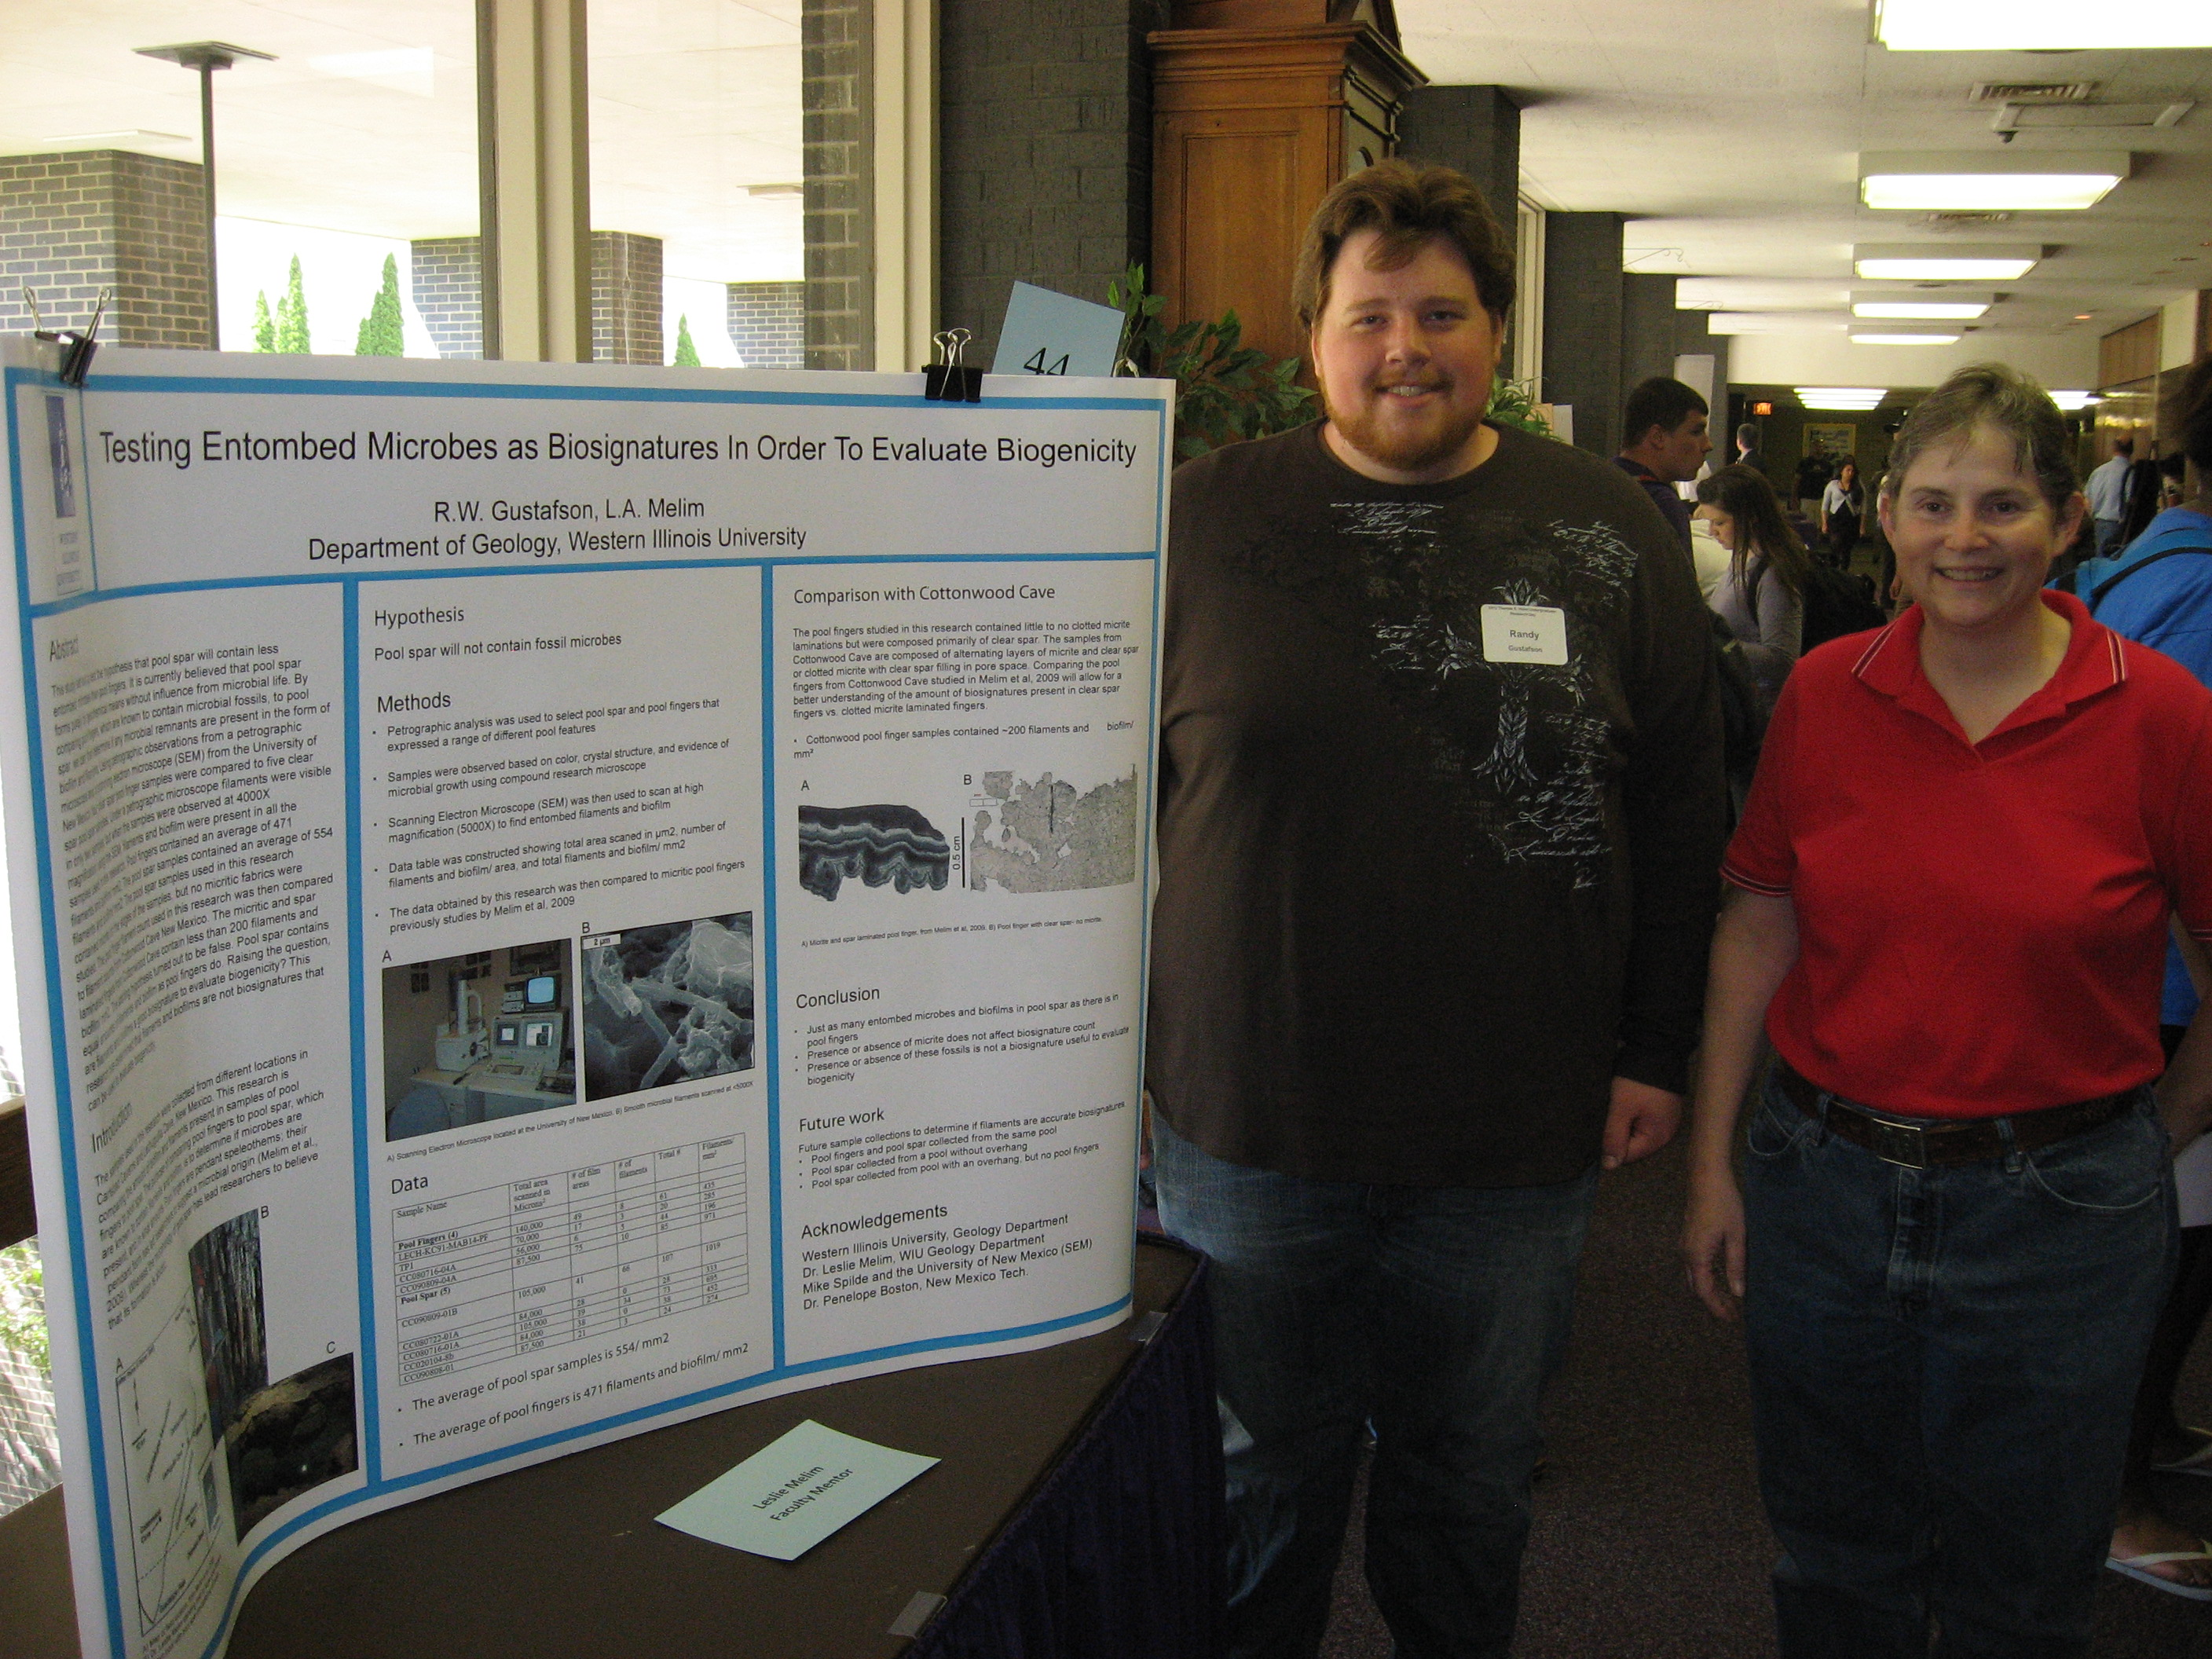 Randy Gustafson, Leslie Melim and poster